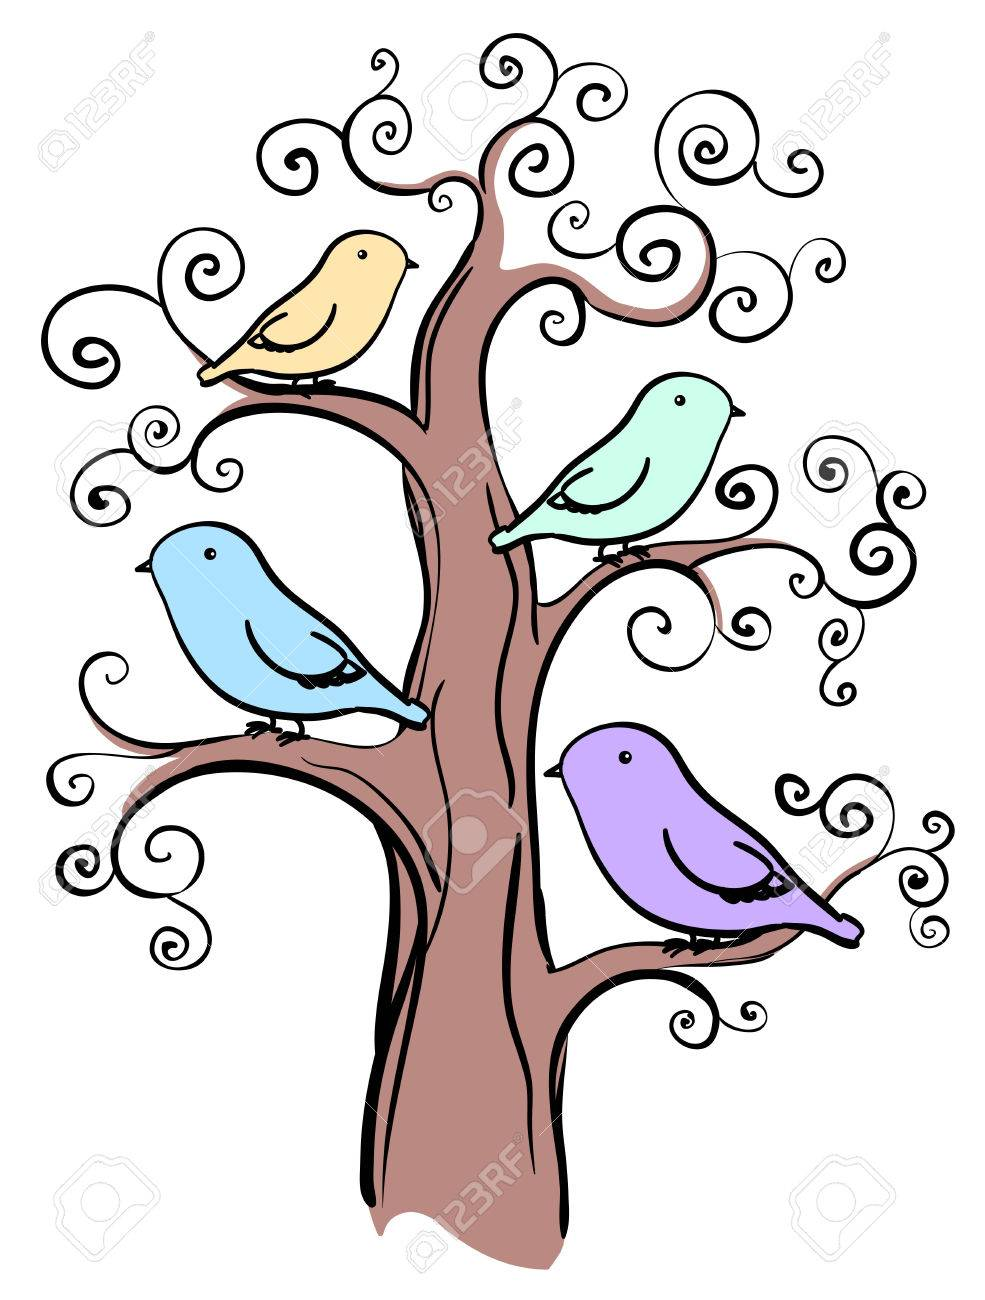 Bird On Tree Drawing at GetDrawings.com.